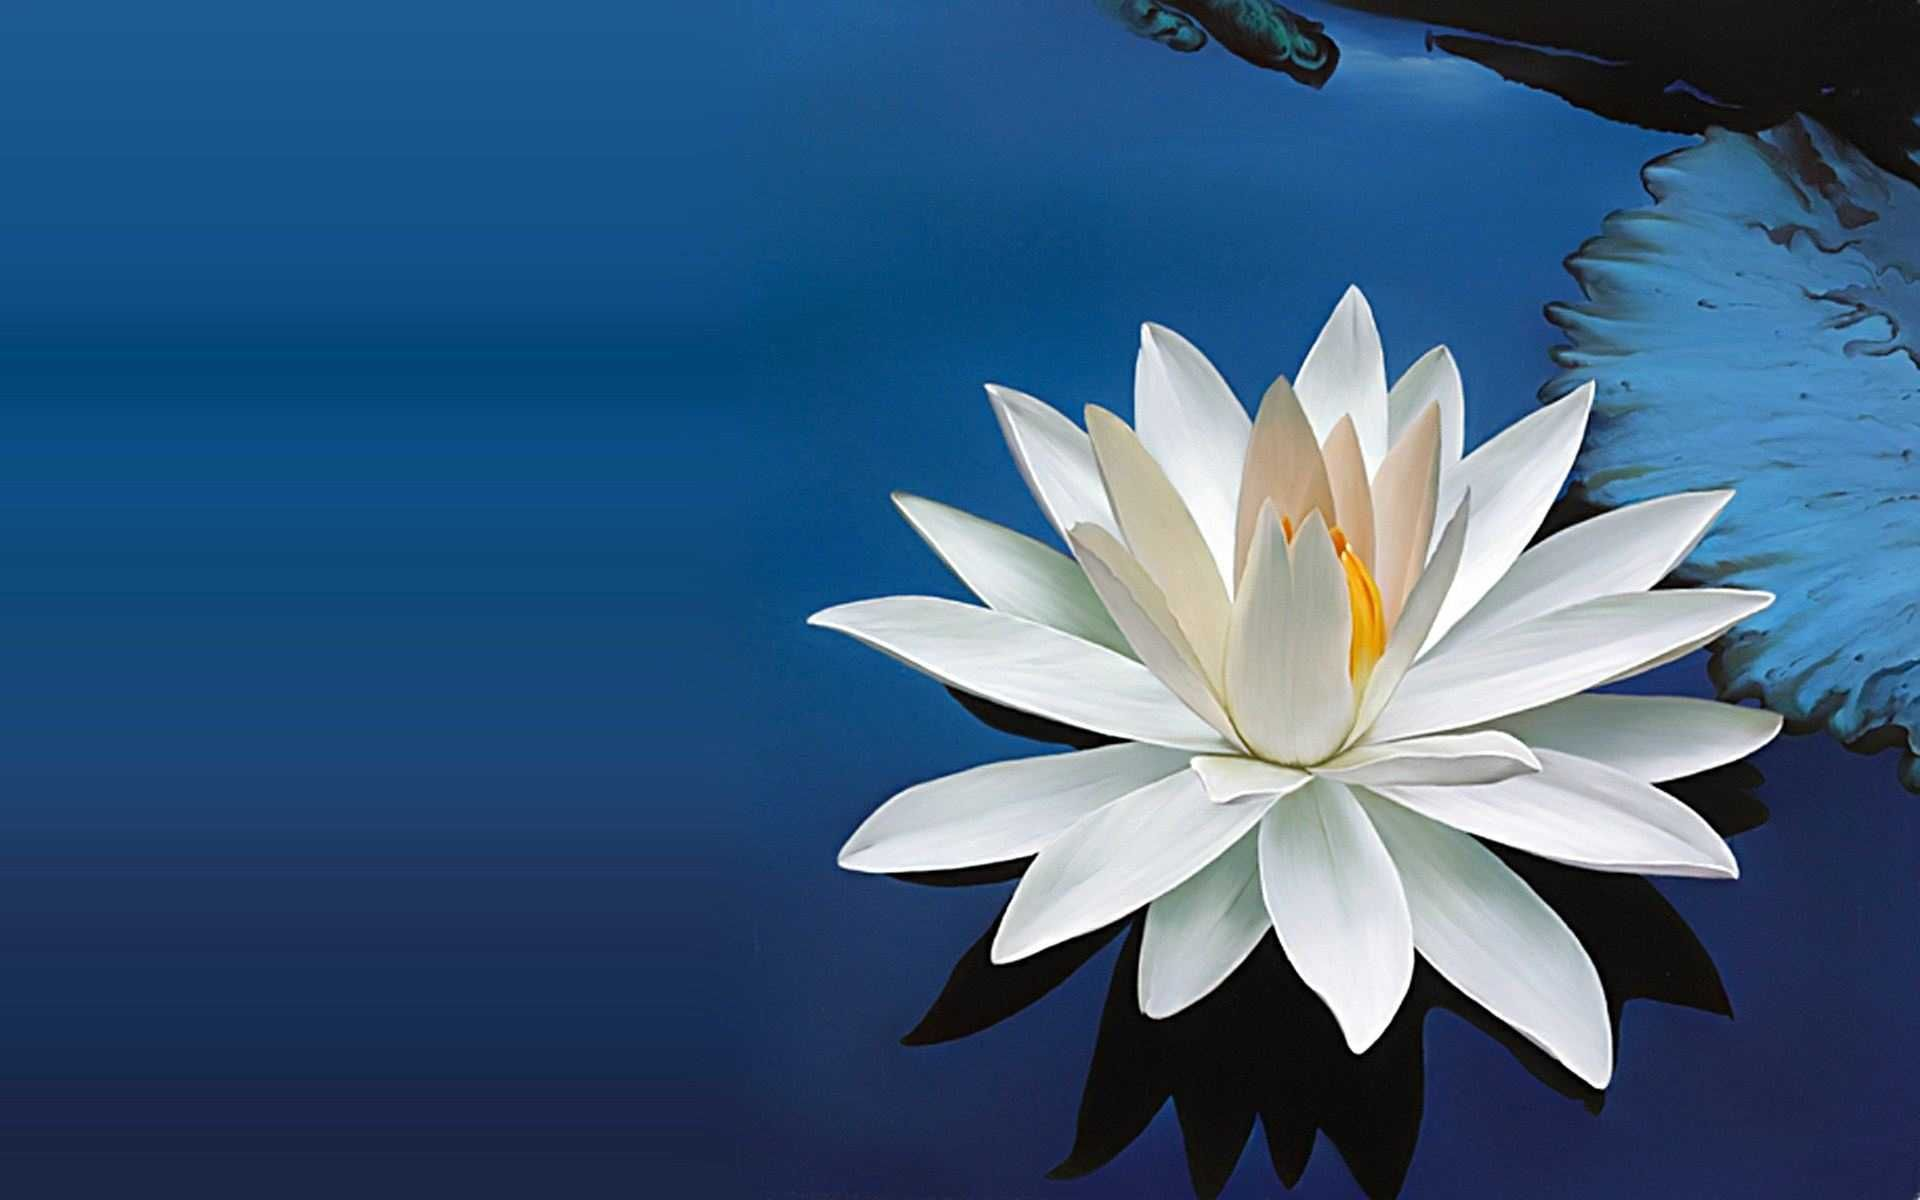 White Lotus Flower Wallpapers Desktop Wallpaper Lotus White